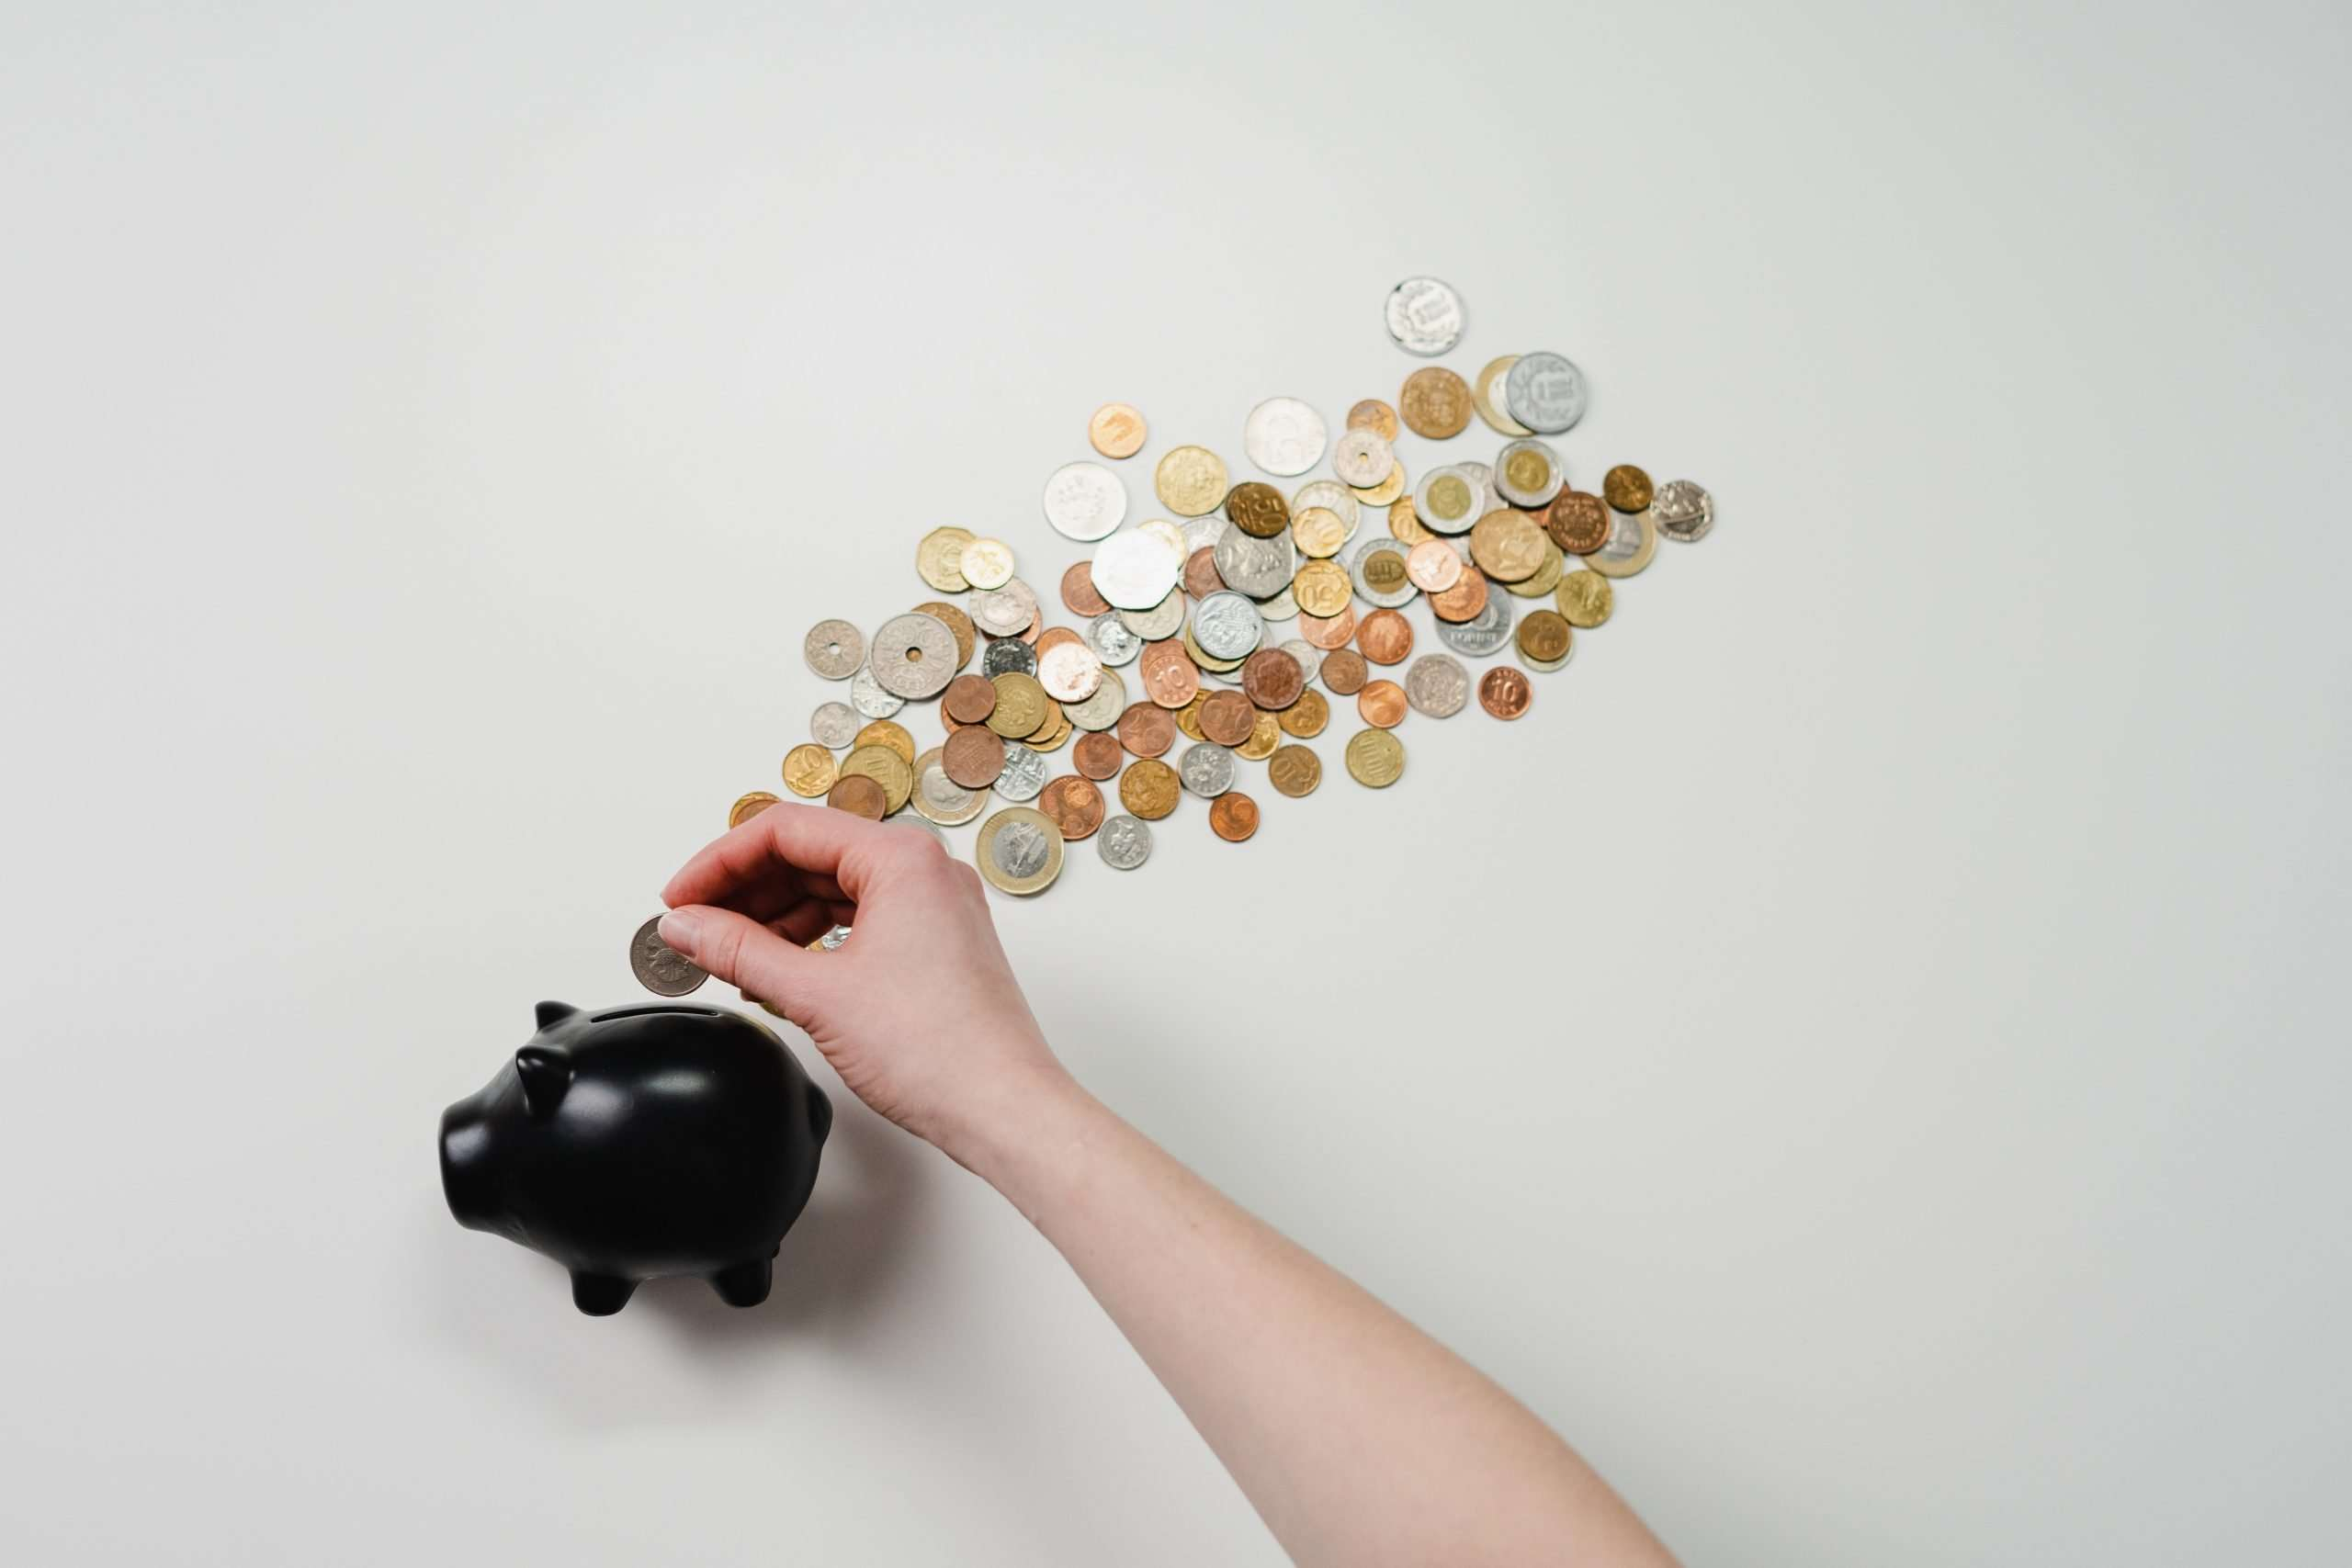 Change being put into a piggy bank